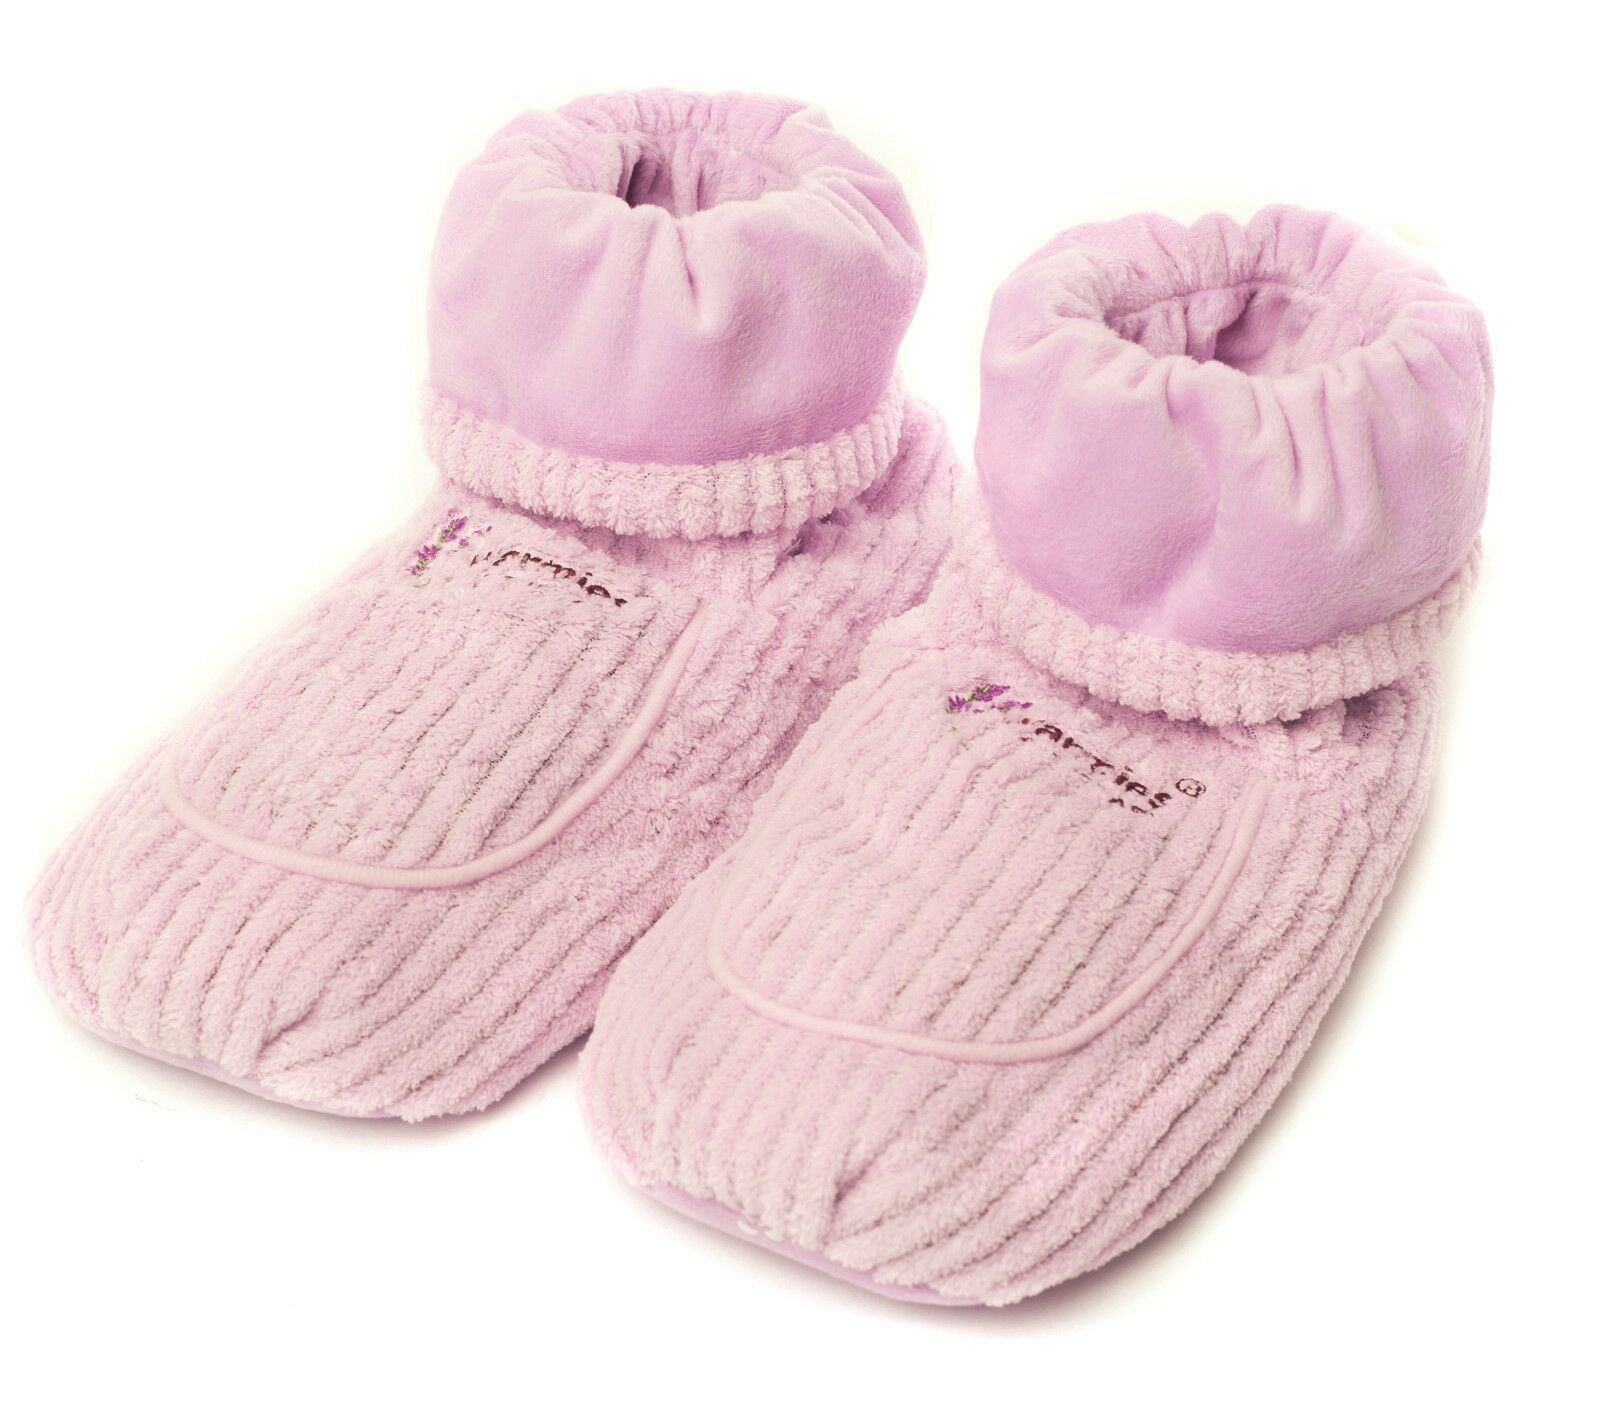 Warmies Spa Therapy Microwavable Heatable Boots in Lilac - Gift Boxed